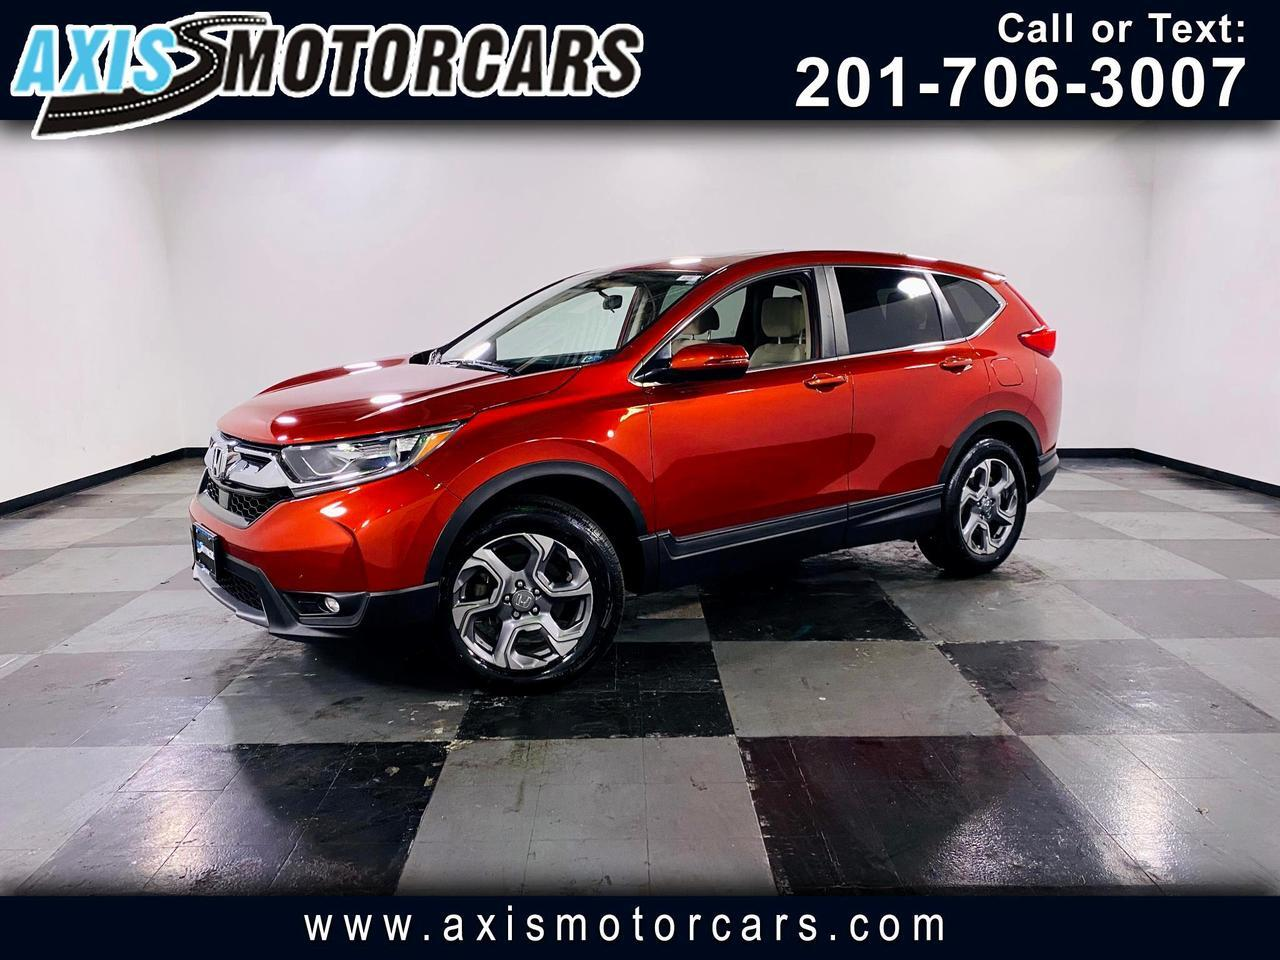 2017 Honda CR-V AWD w/Backup Camera Sun Roof Jersey City NJ